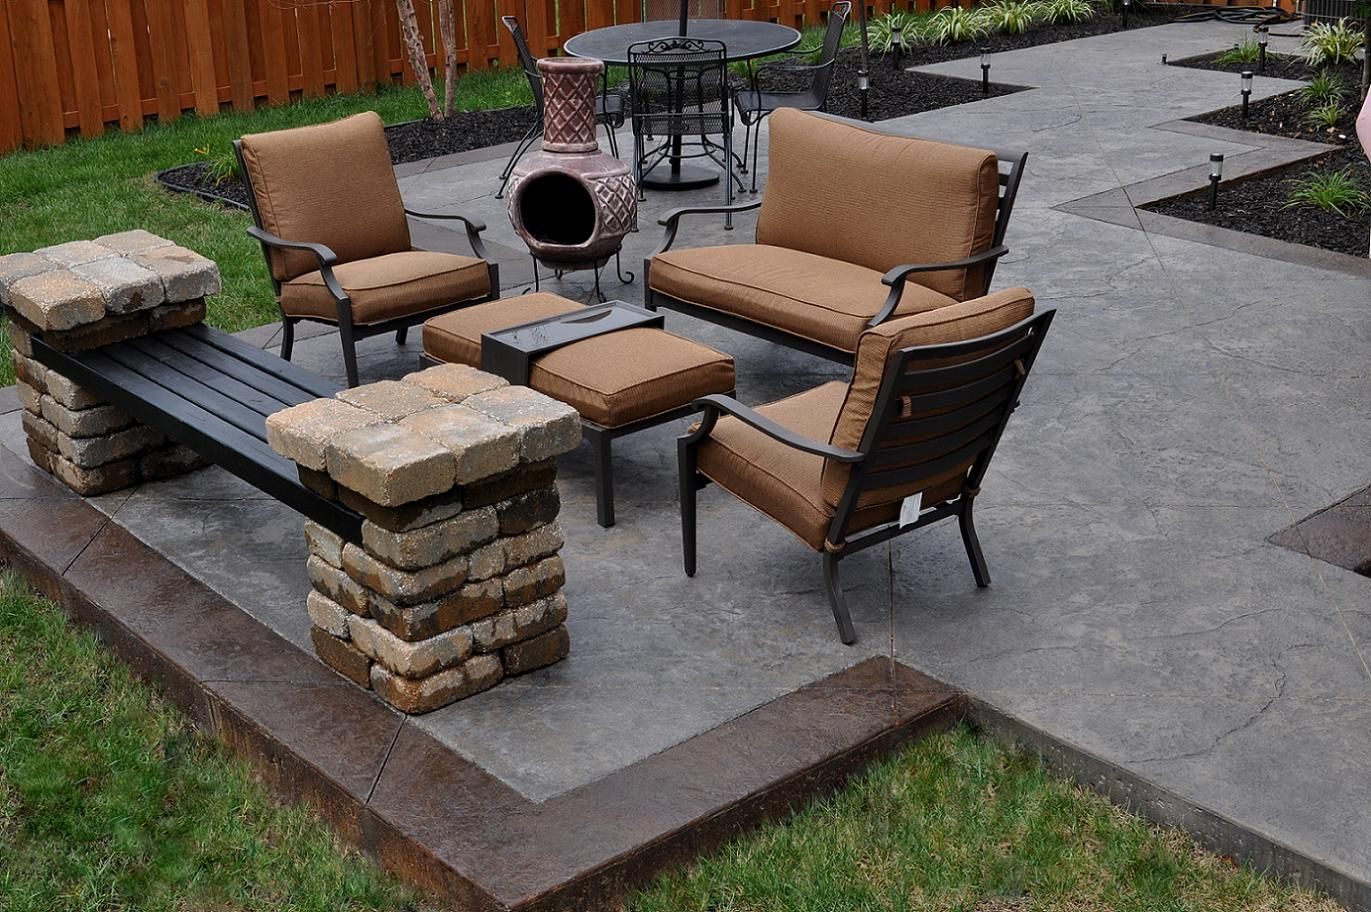 full pavers types design patio patios and furniture fantastic flooring modern covered simple designs large livingroom of size format ideas concrete